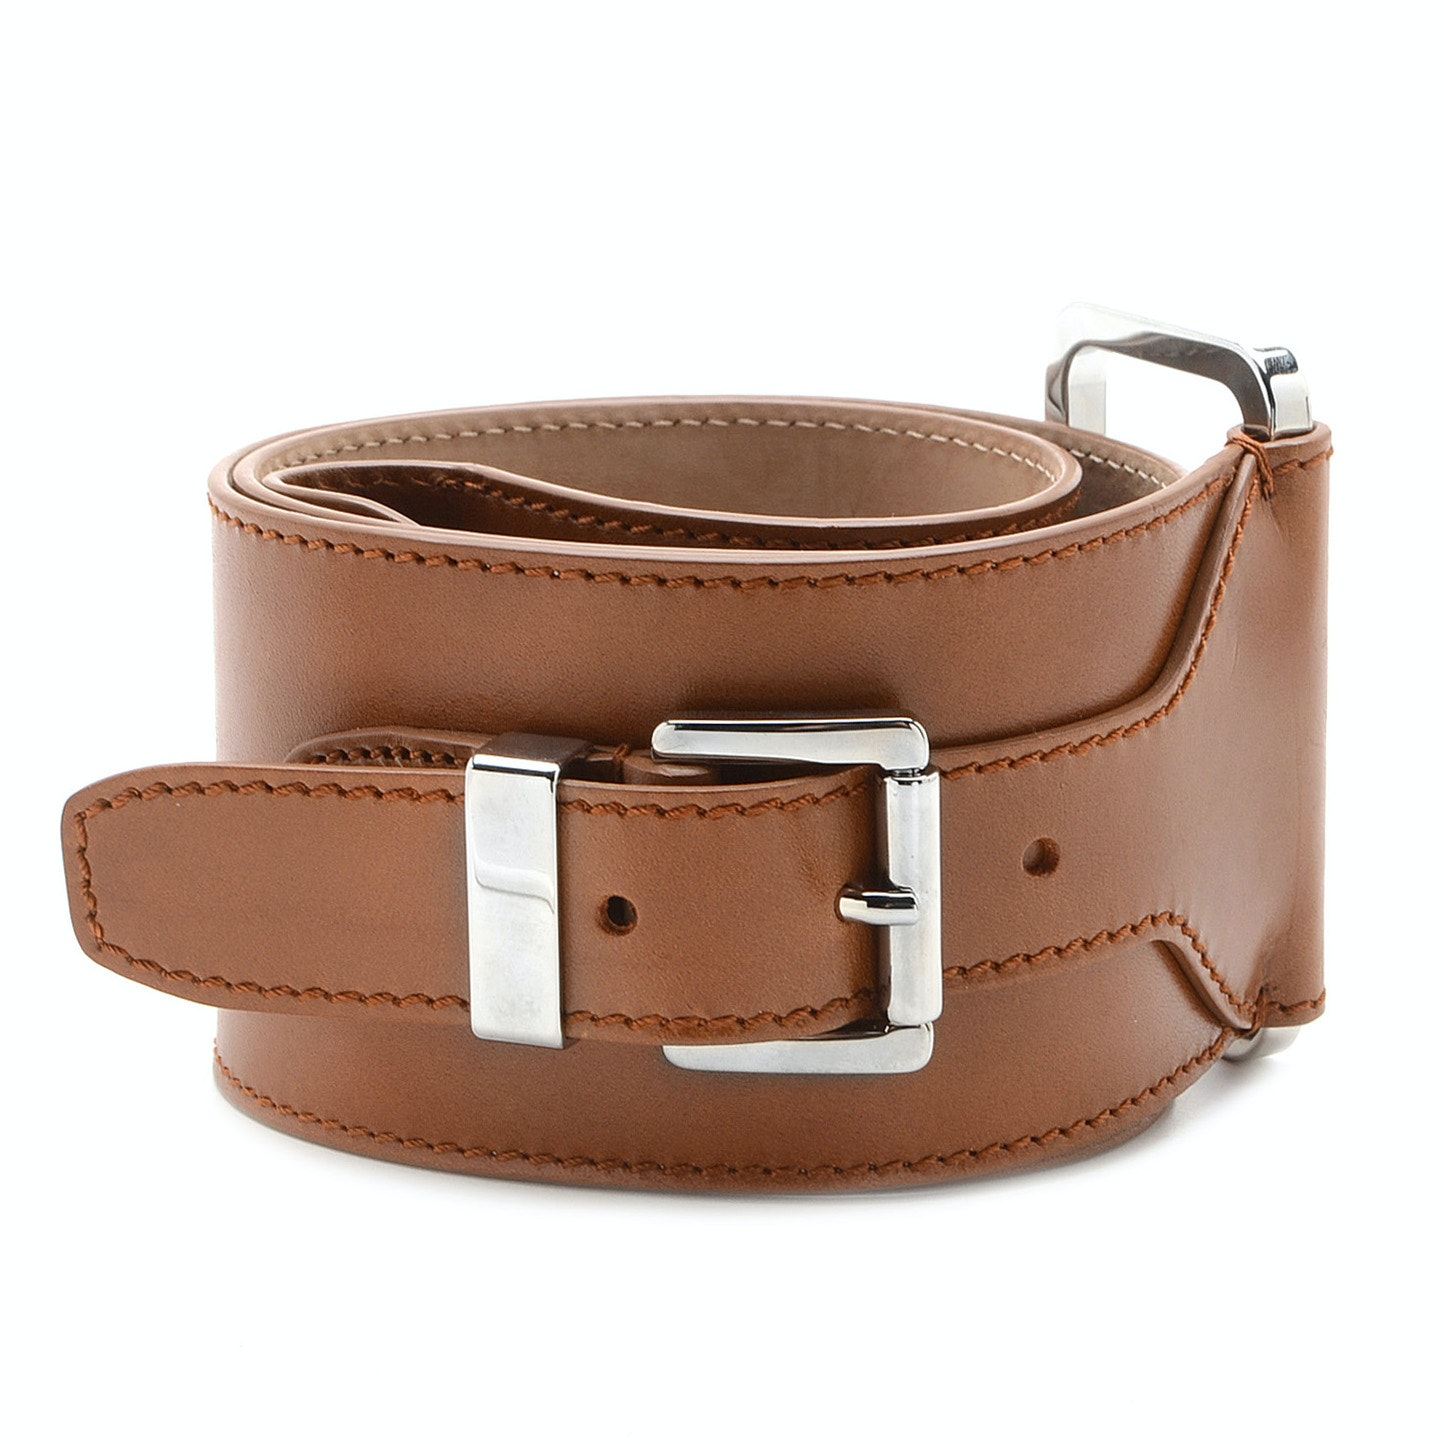 Michael Kors Wide Leather Belt in Golden Brown Leather